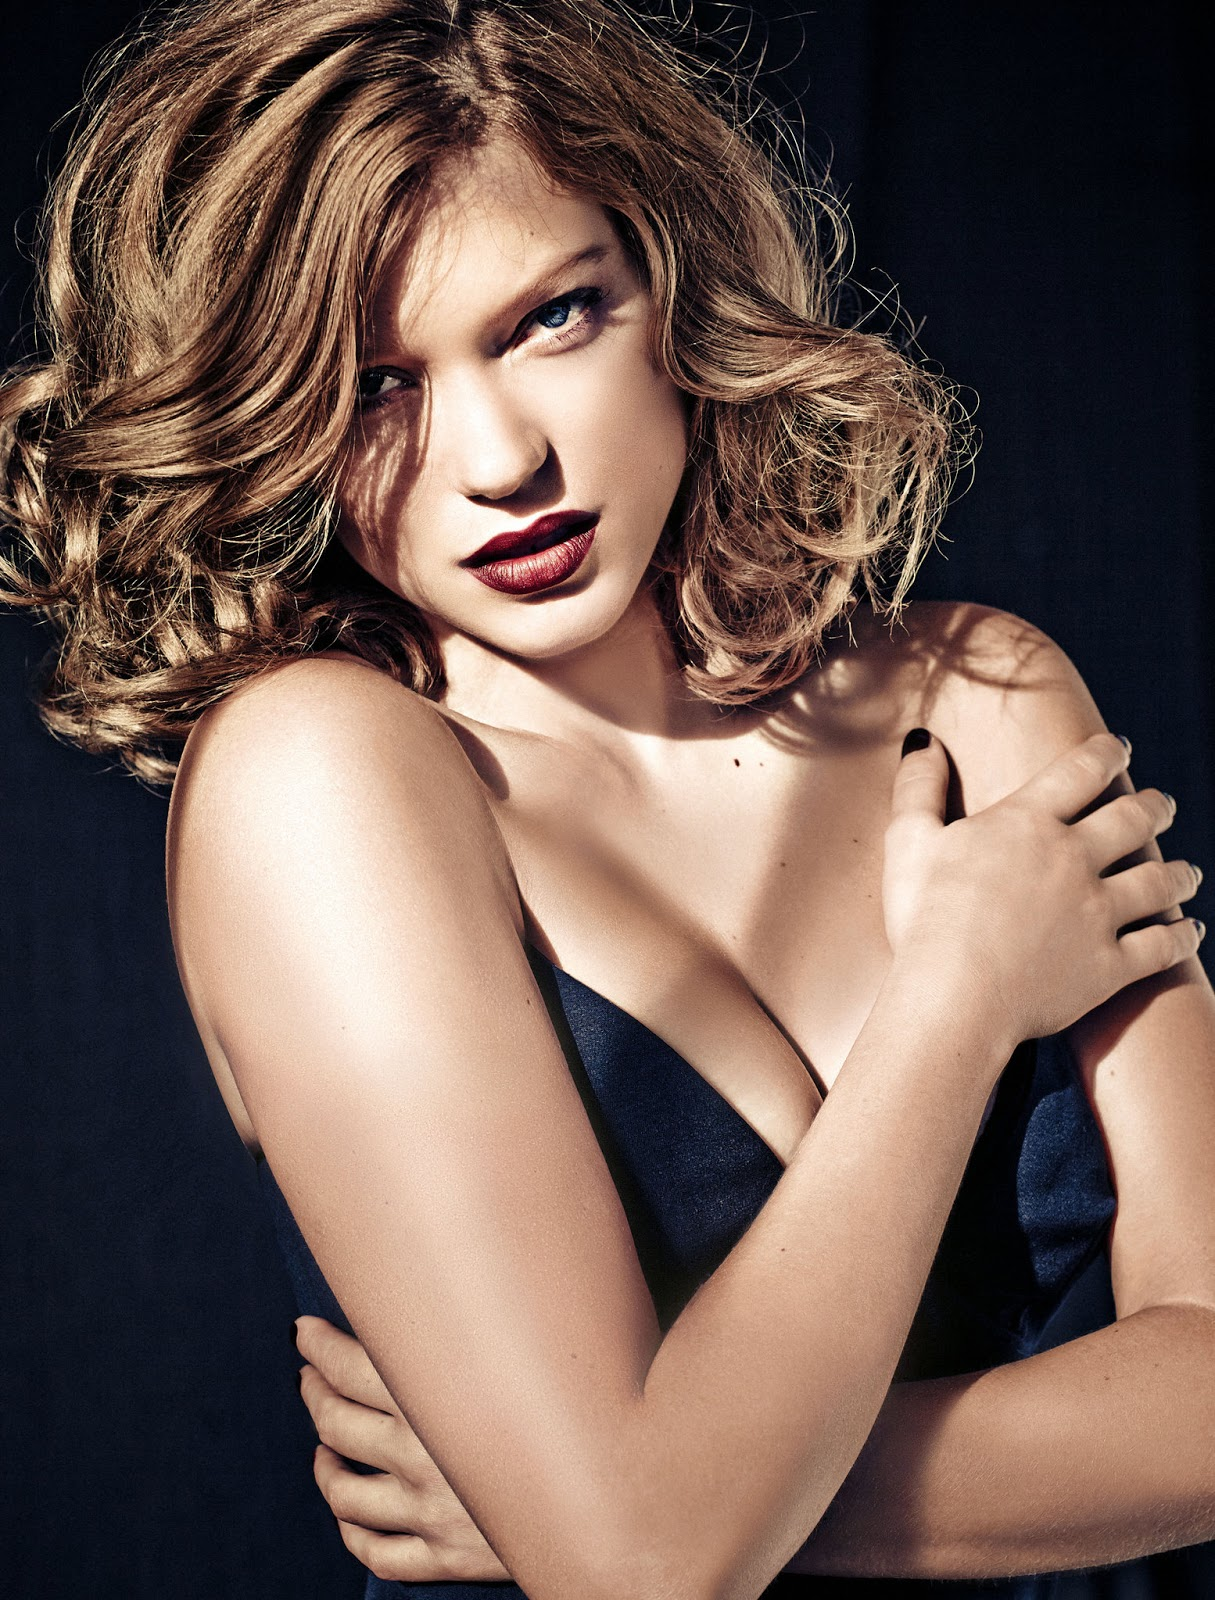 A bond girl Léa Seydoux